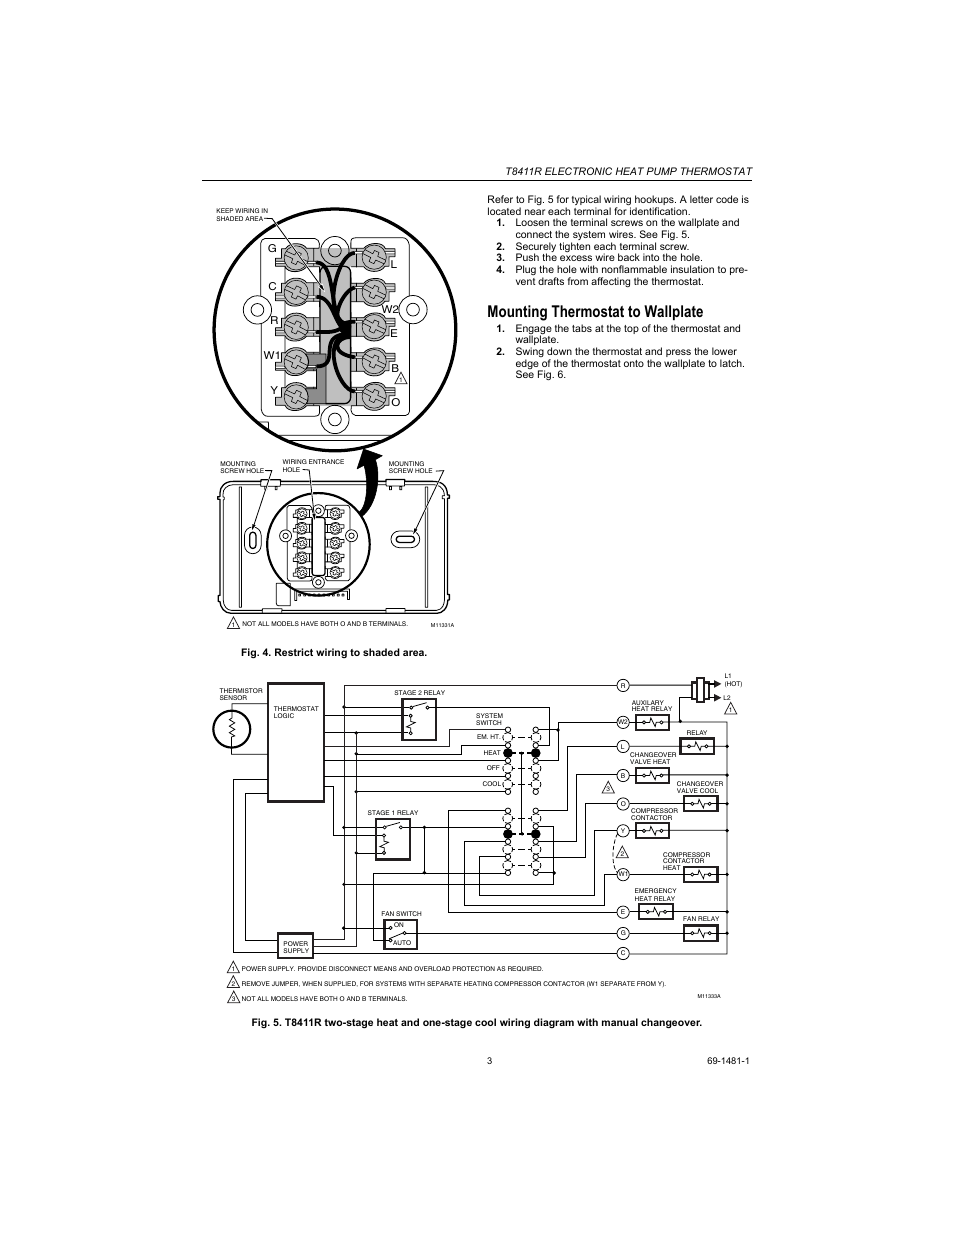 Honeywell Thermostat T8411r Wiring Diagram Programmable Heat Pump Mounting To Wallplate Rh Manualsdir Com Round